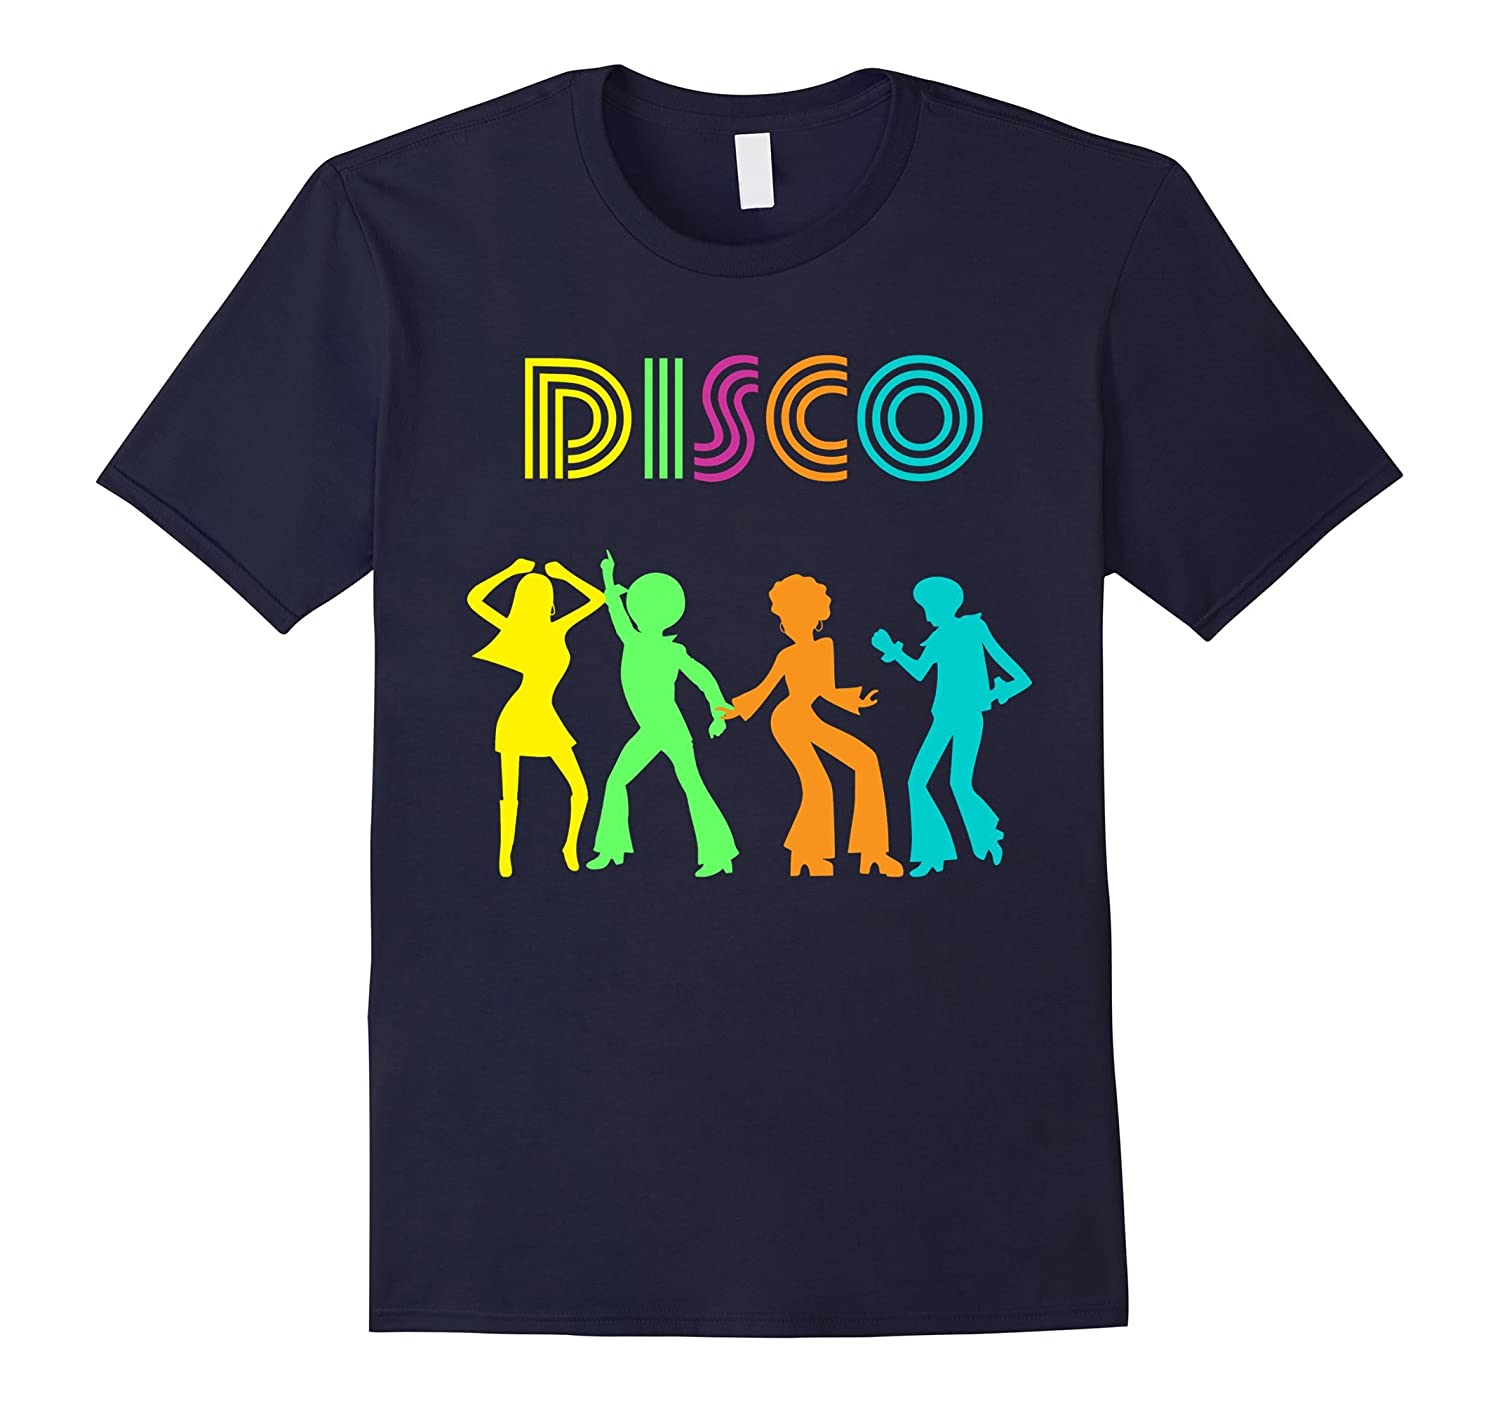 1970's Style Disco Dancers Dancing Retro Design T-Shirt-ah my shirt one gift